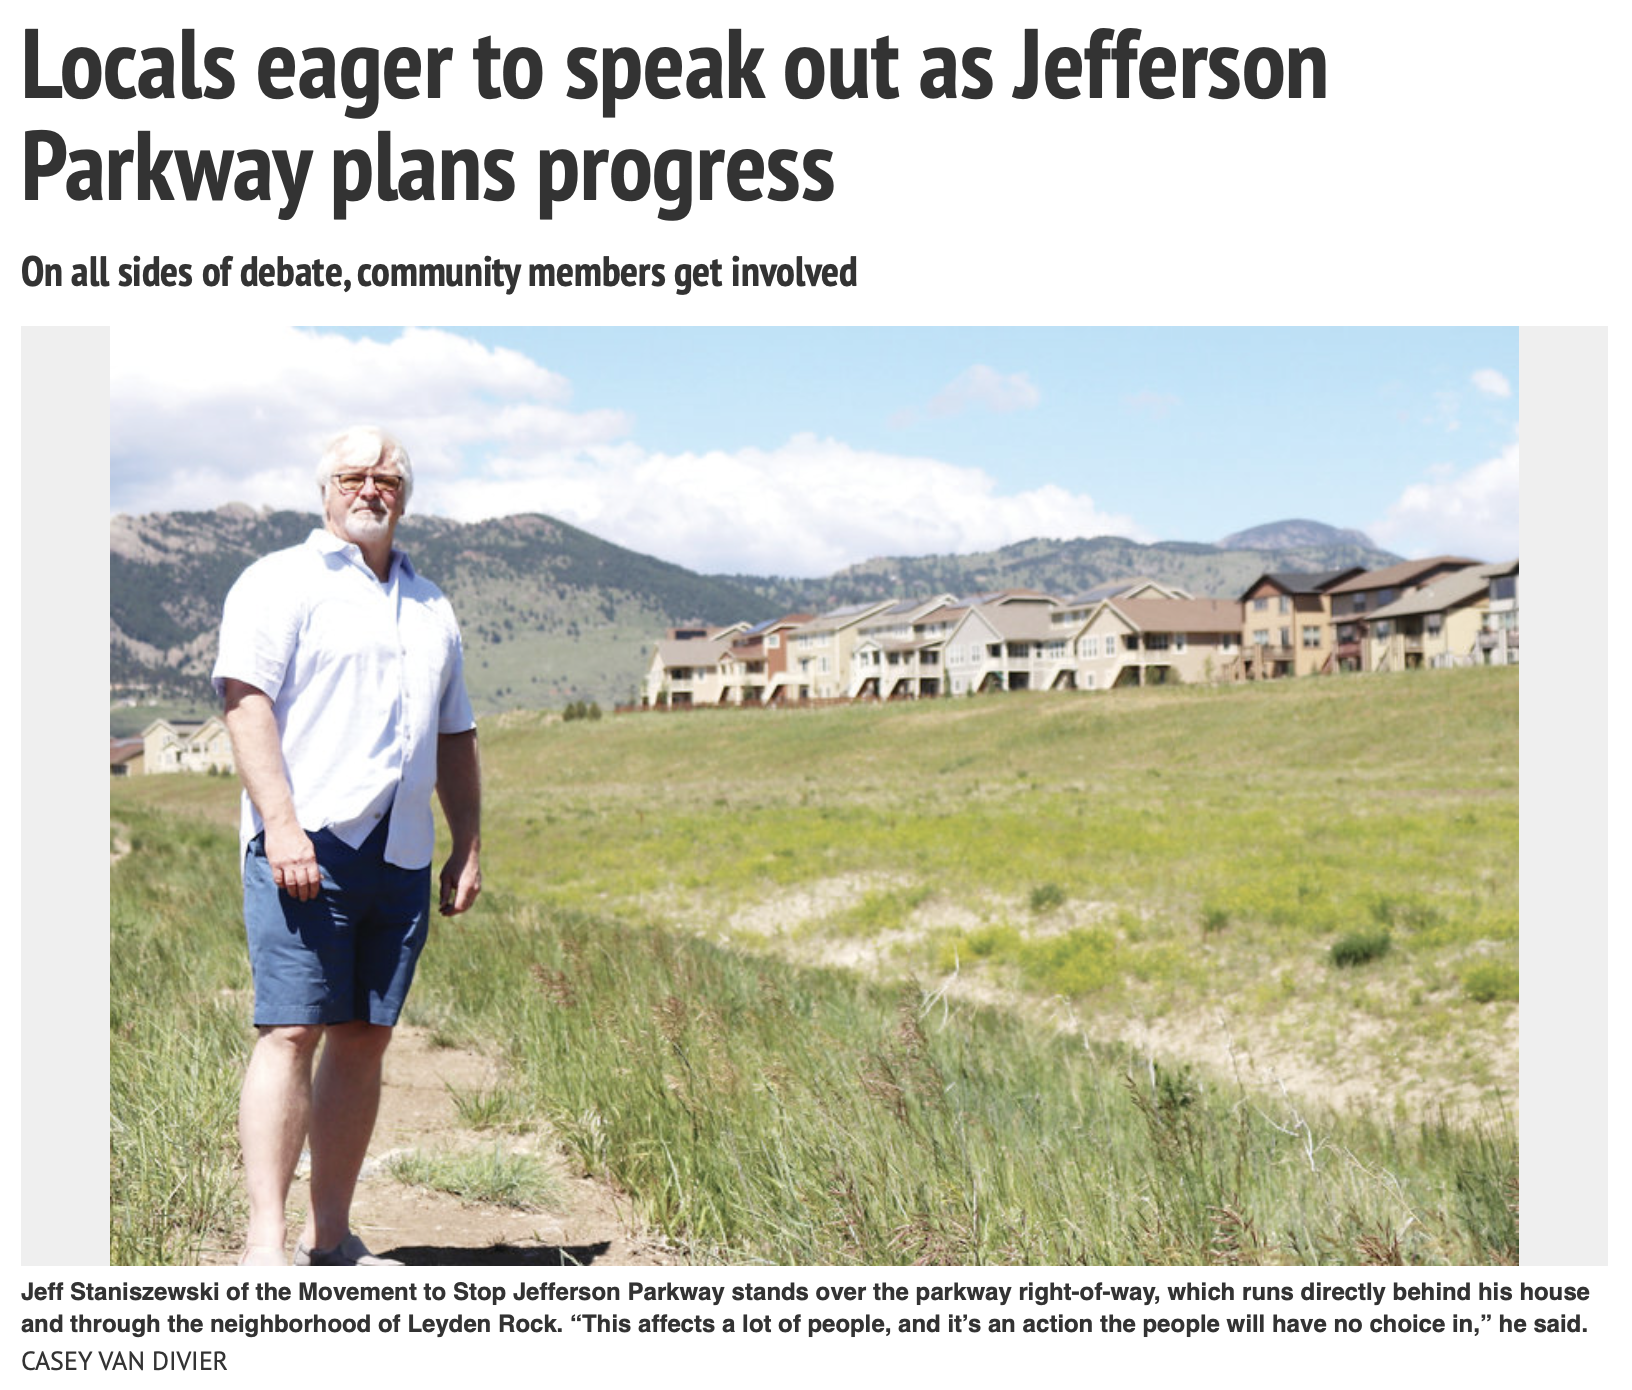 Our own Brett Vernon was recently quoted in this Arvada Press article. Click on the image or this link to read:    https://arvadapress.com/stories/locals-eager-to-speak-out-as-jefferson-parkway-plans-progress,284392